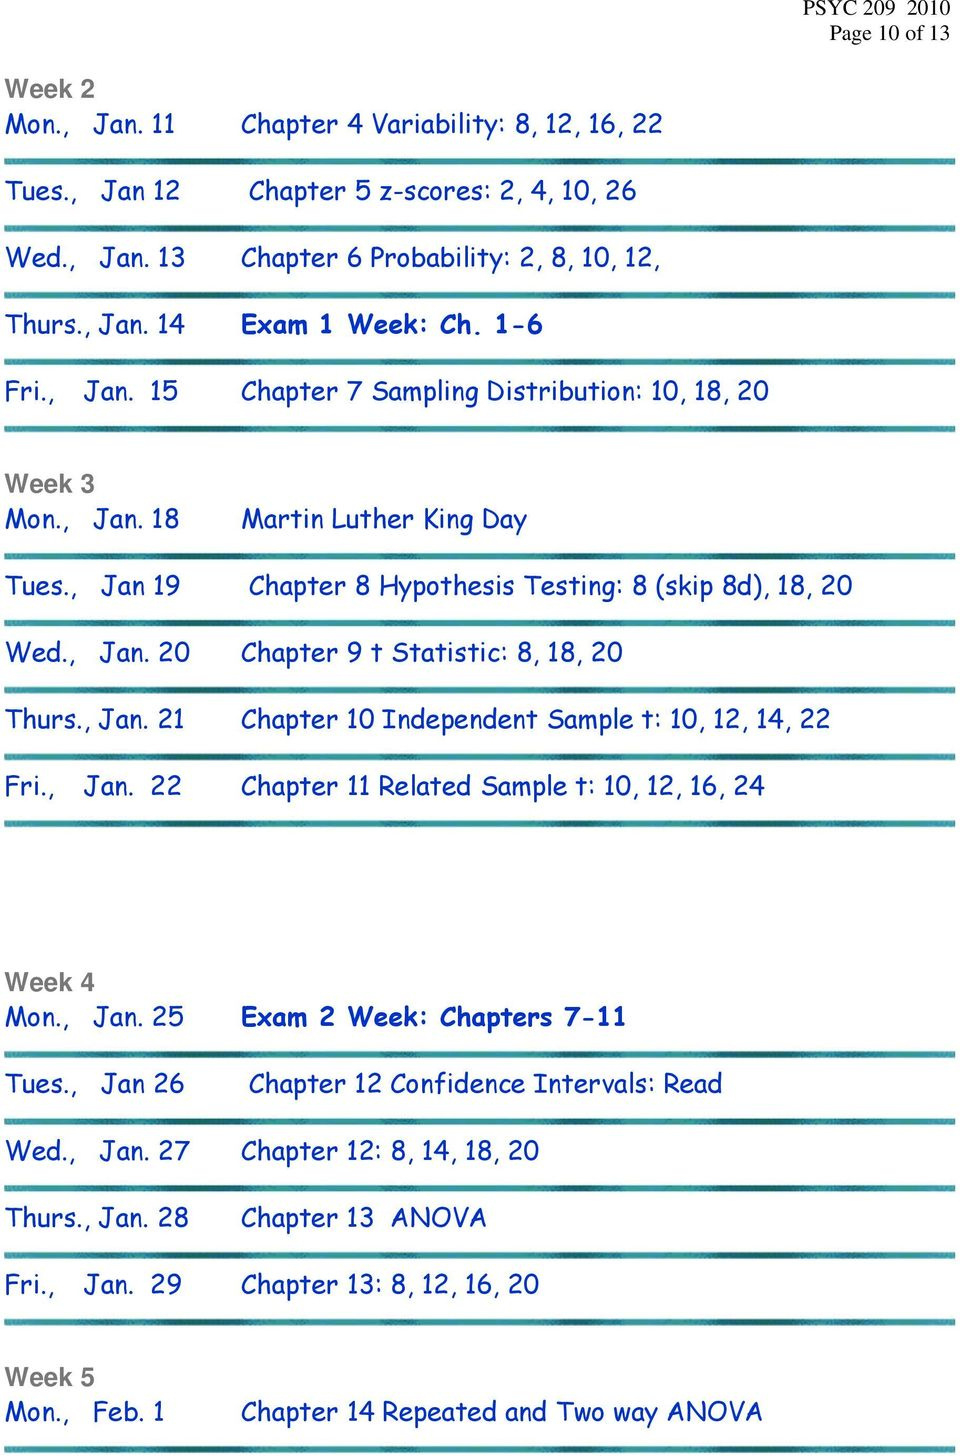 , Jan. 21 Chapter 10 Independent Sample t: 10, 12, 14, 22 Fri., Jan. 22 Chapter 11 Related Sample t: 10, 12, 16, 24 Week 4 Mon., Jan. 25 Exam 2 Week: Chapters 7-11 Tues.